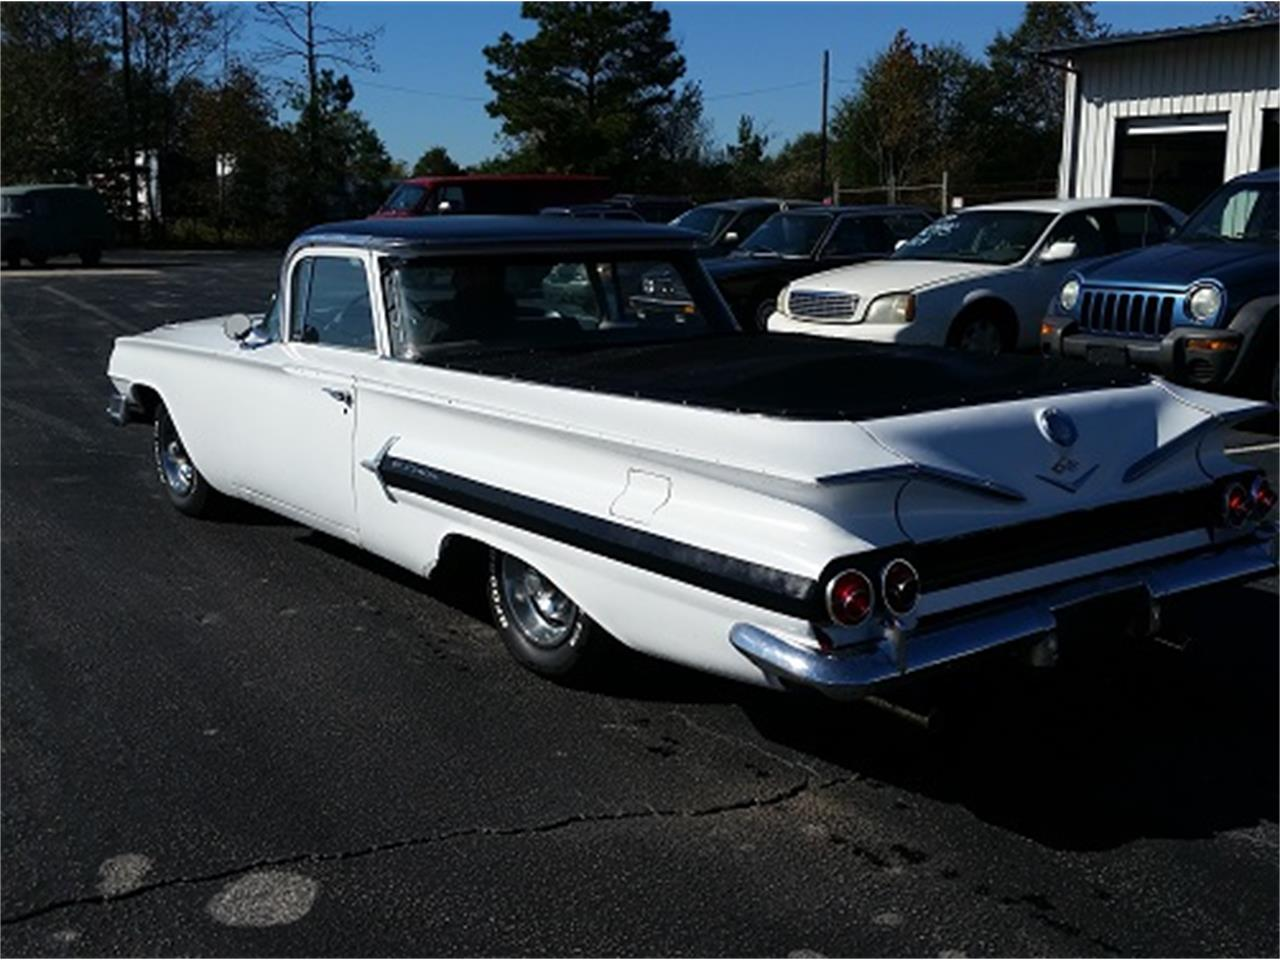 Large Picture of 1960 Chevrolet El Camino located in Simpsonville South Carolina - $12,990.00 - OGD2